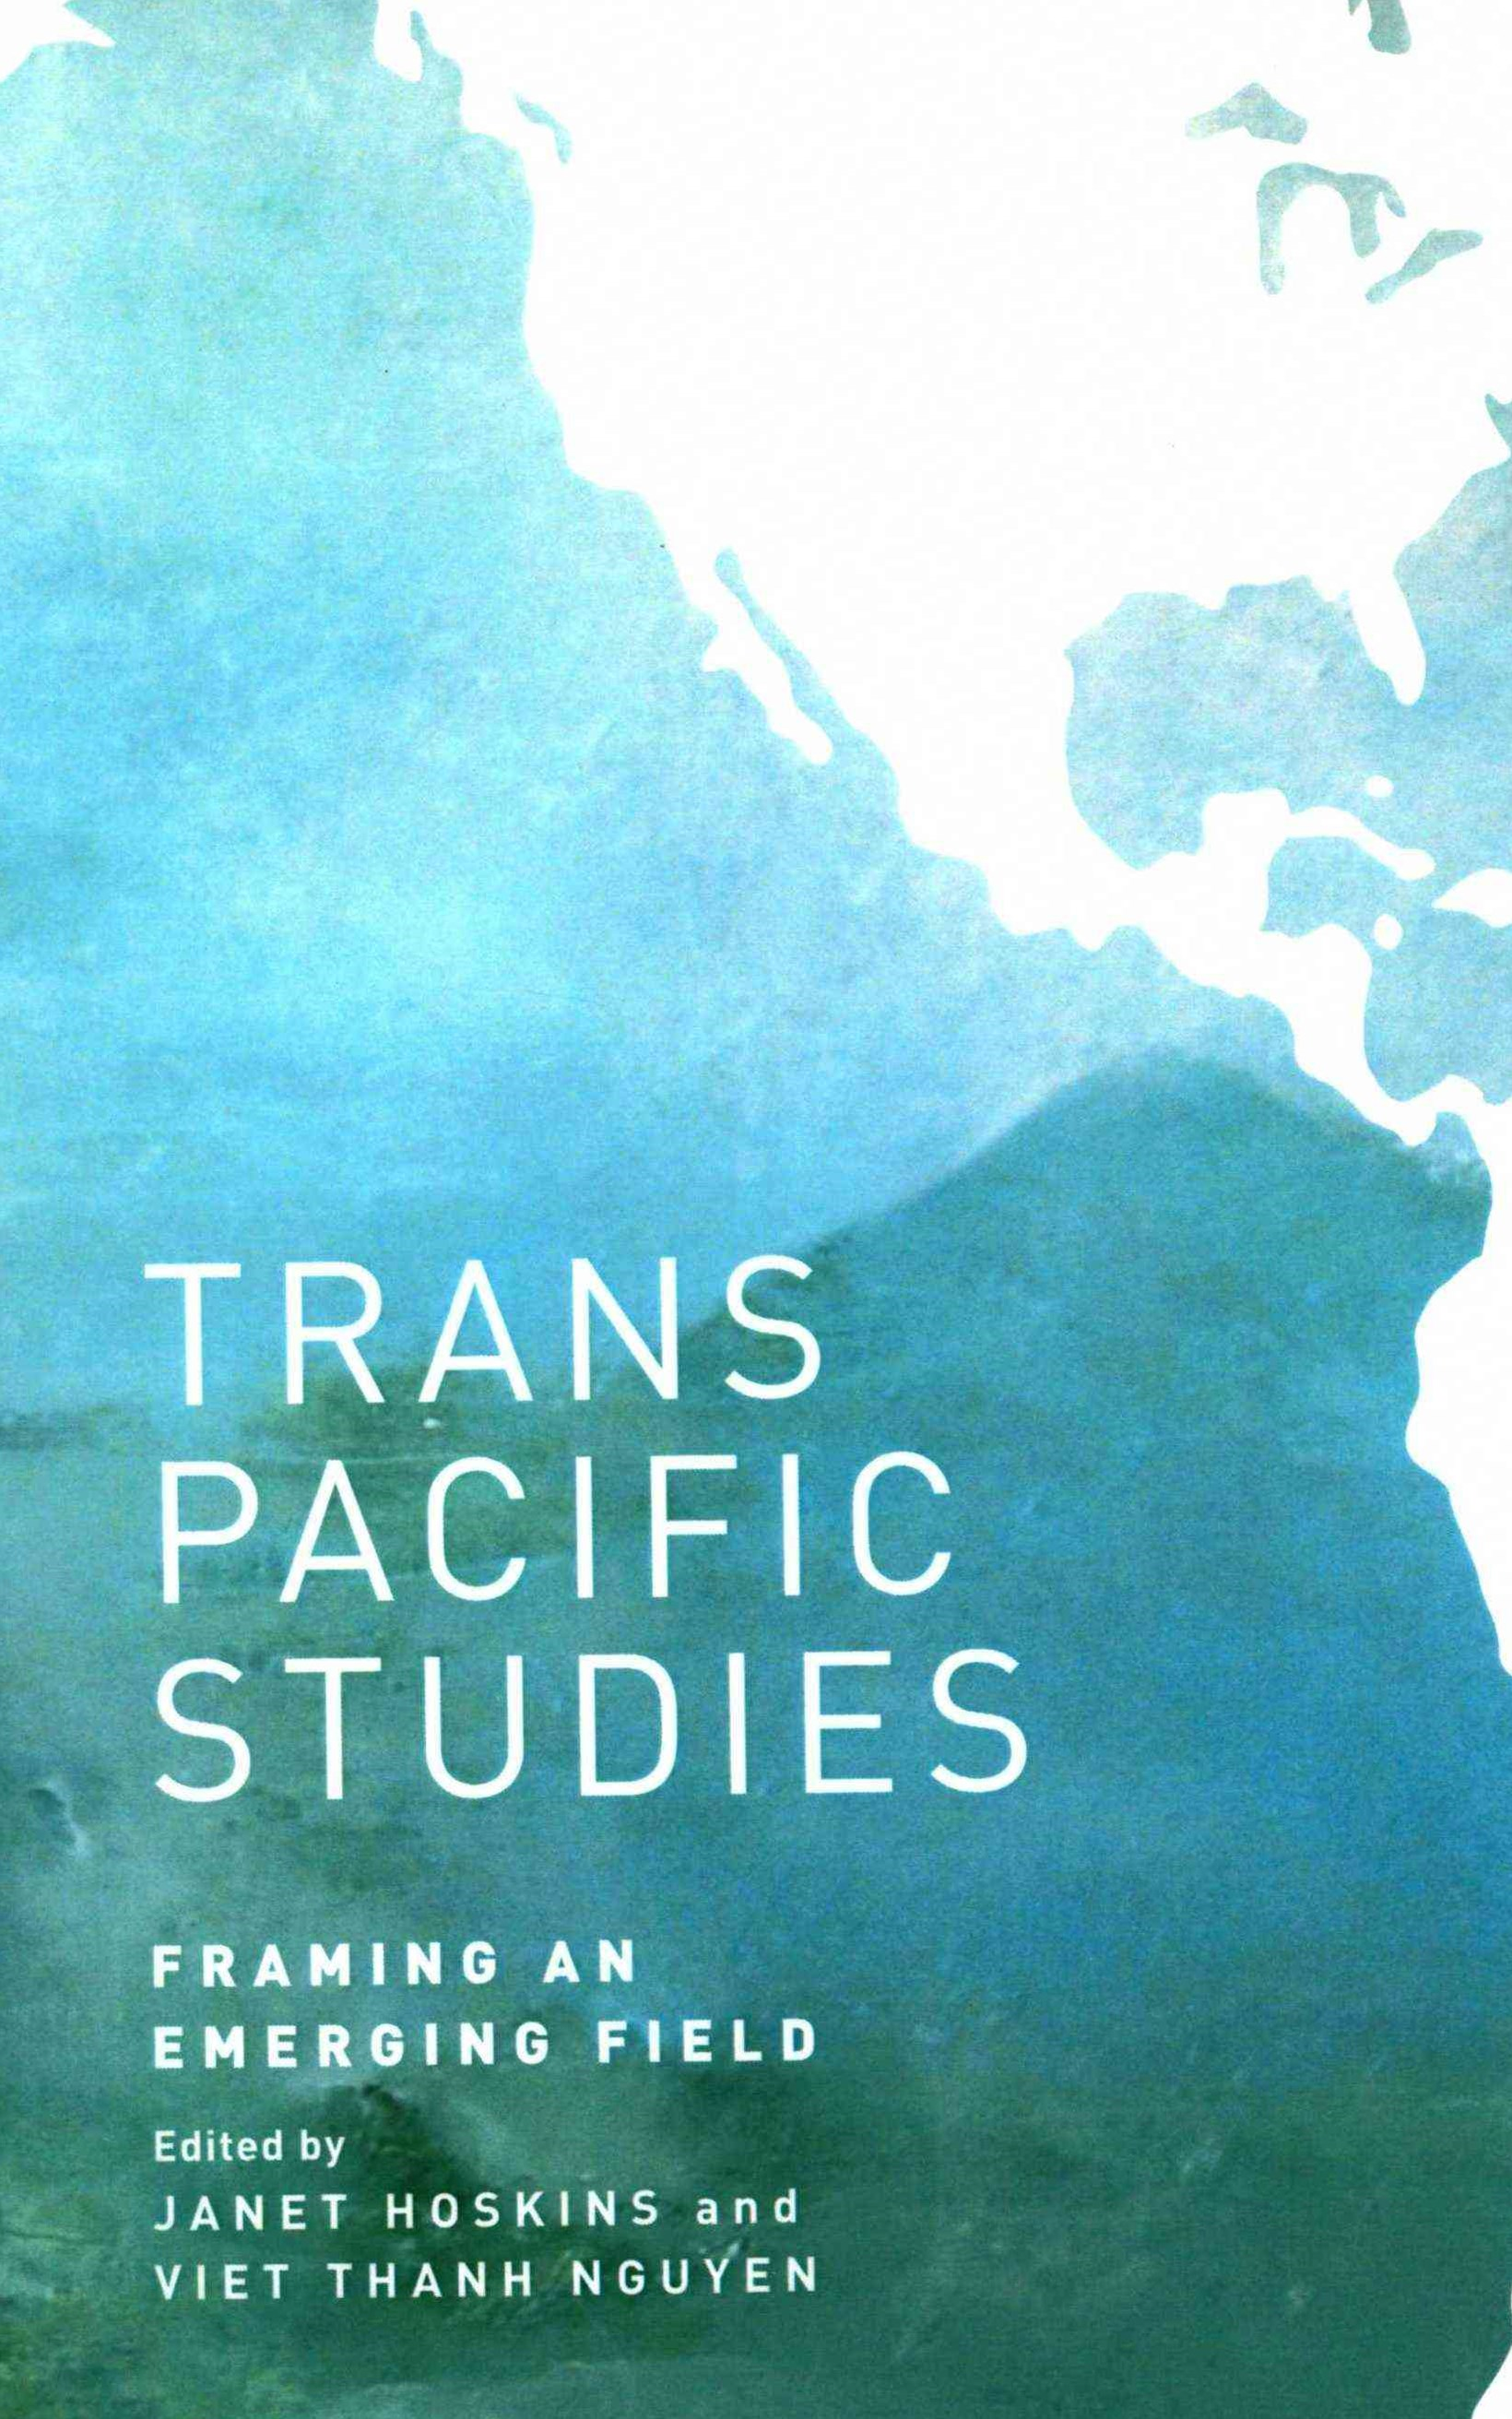 Transpacific Studies